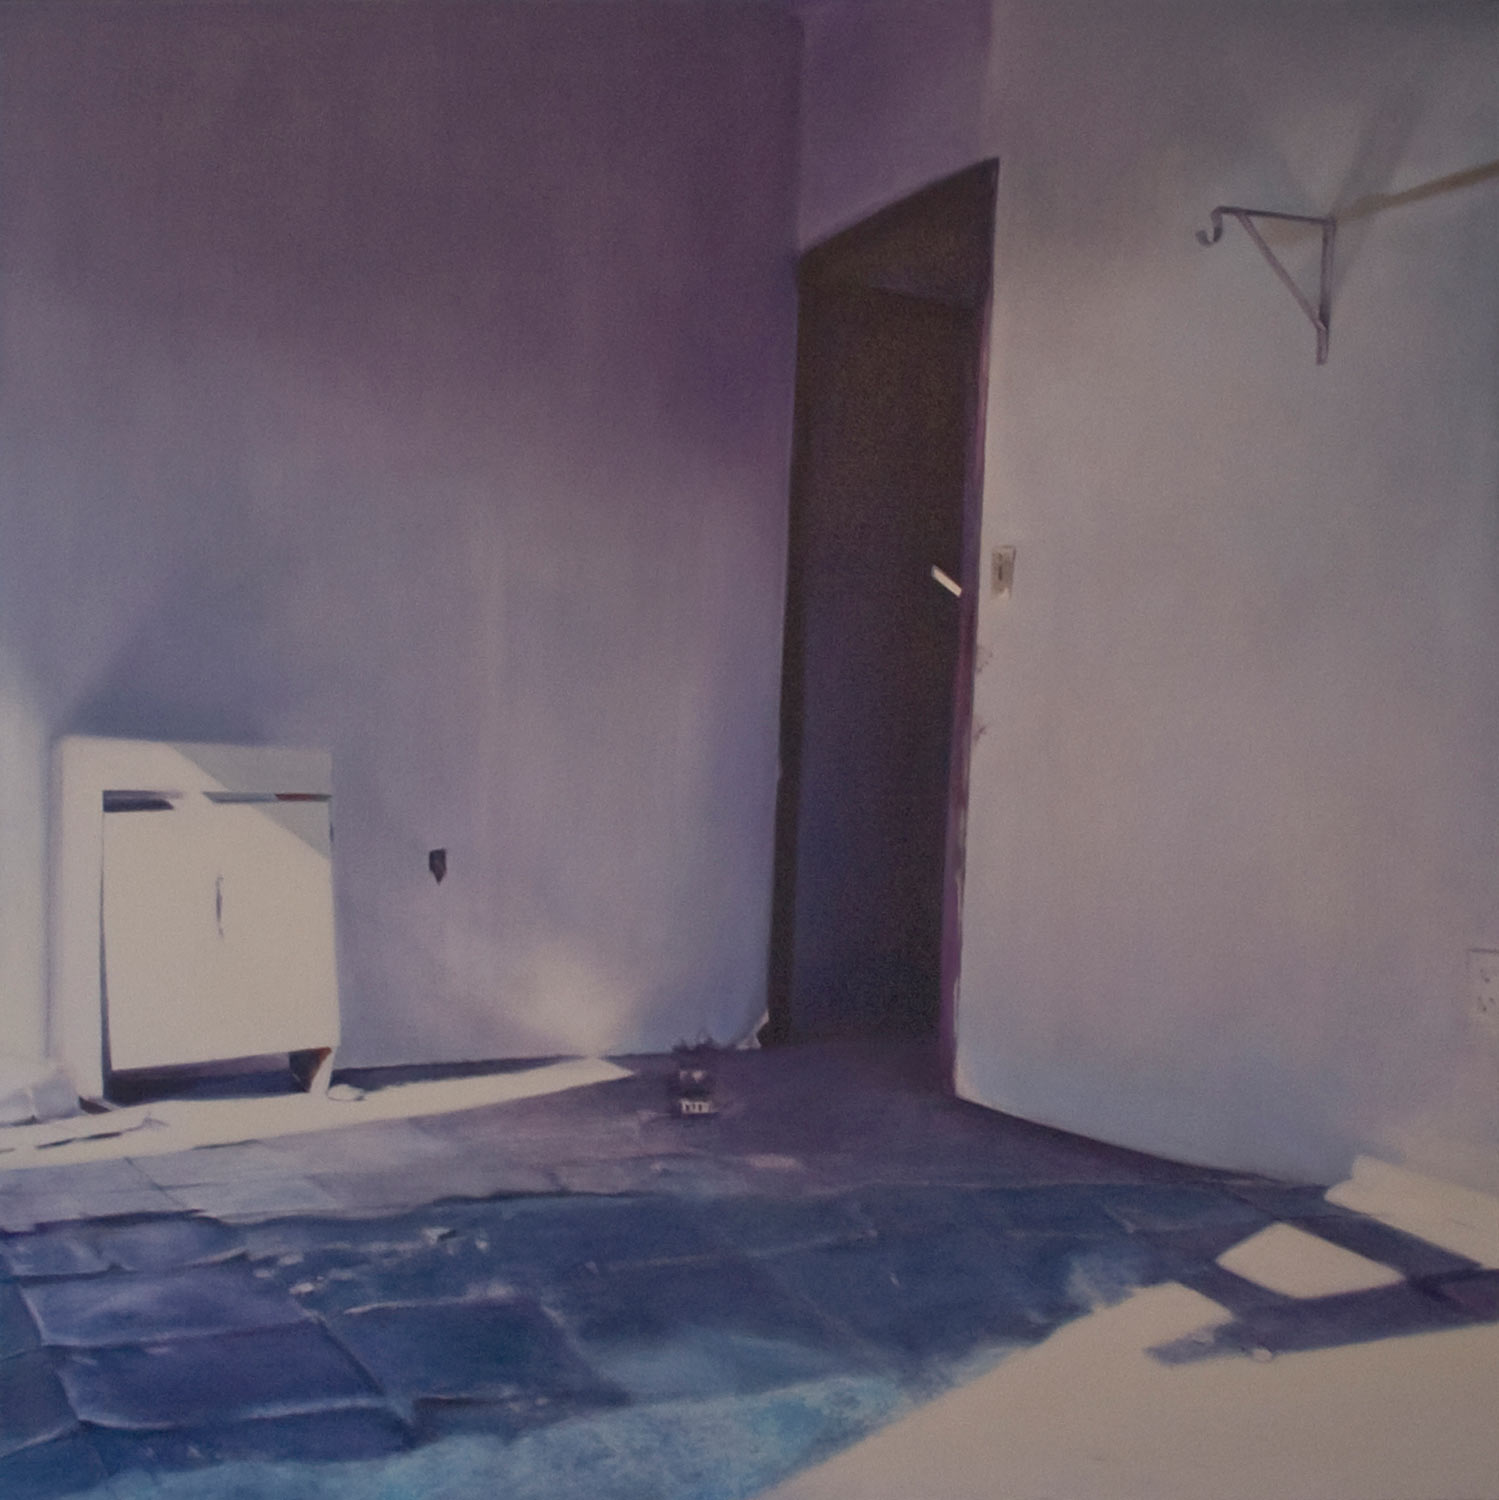 Sink, 2012 Oil on canvas 36 x 36 inches